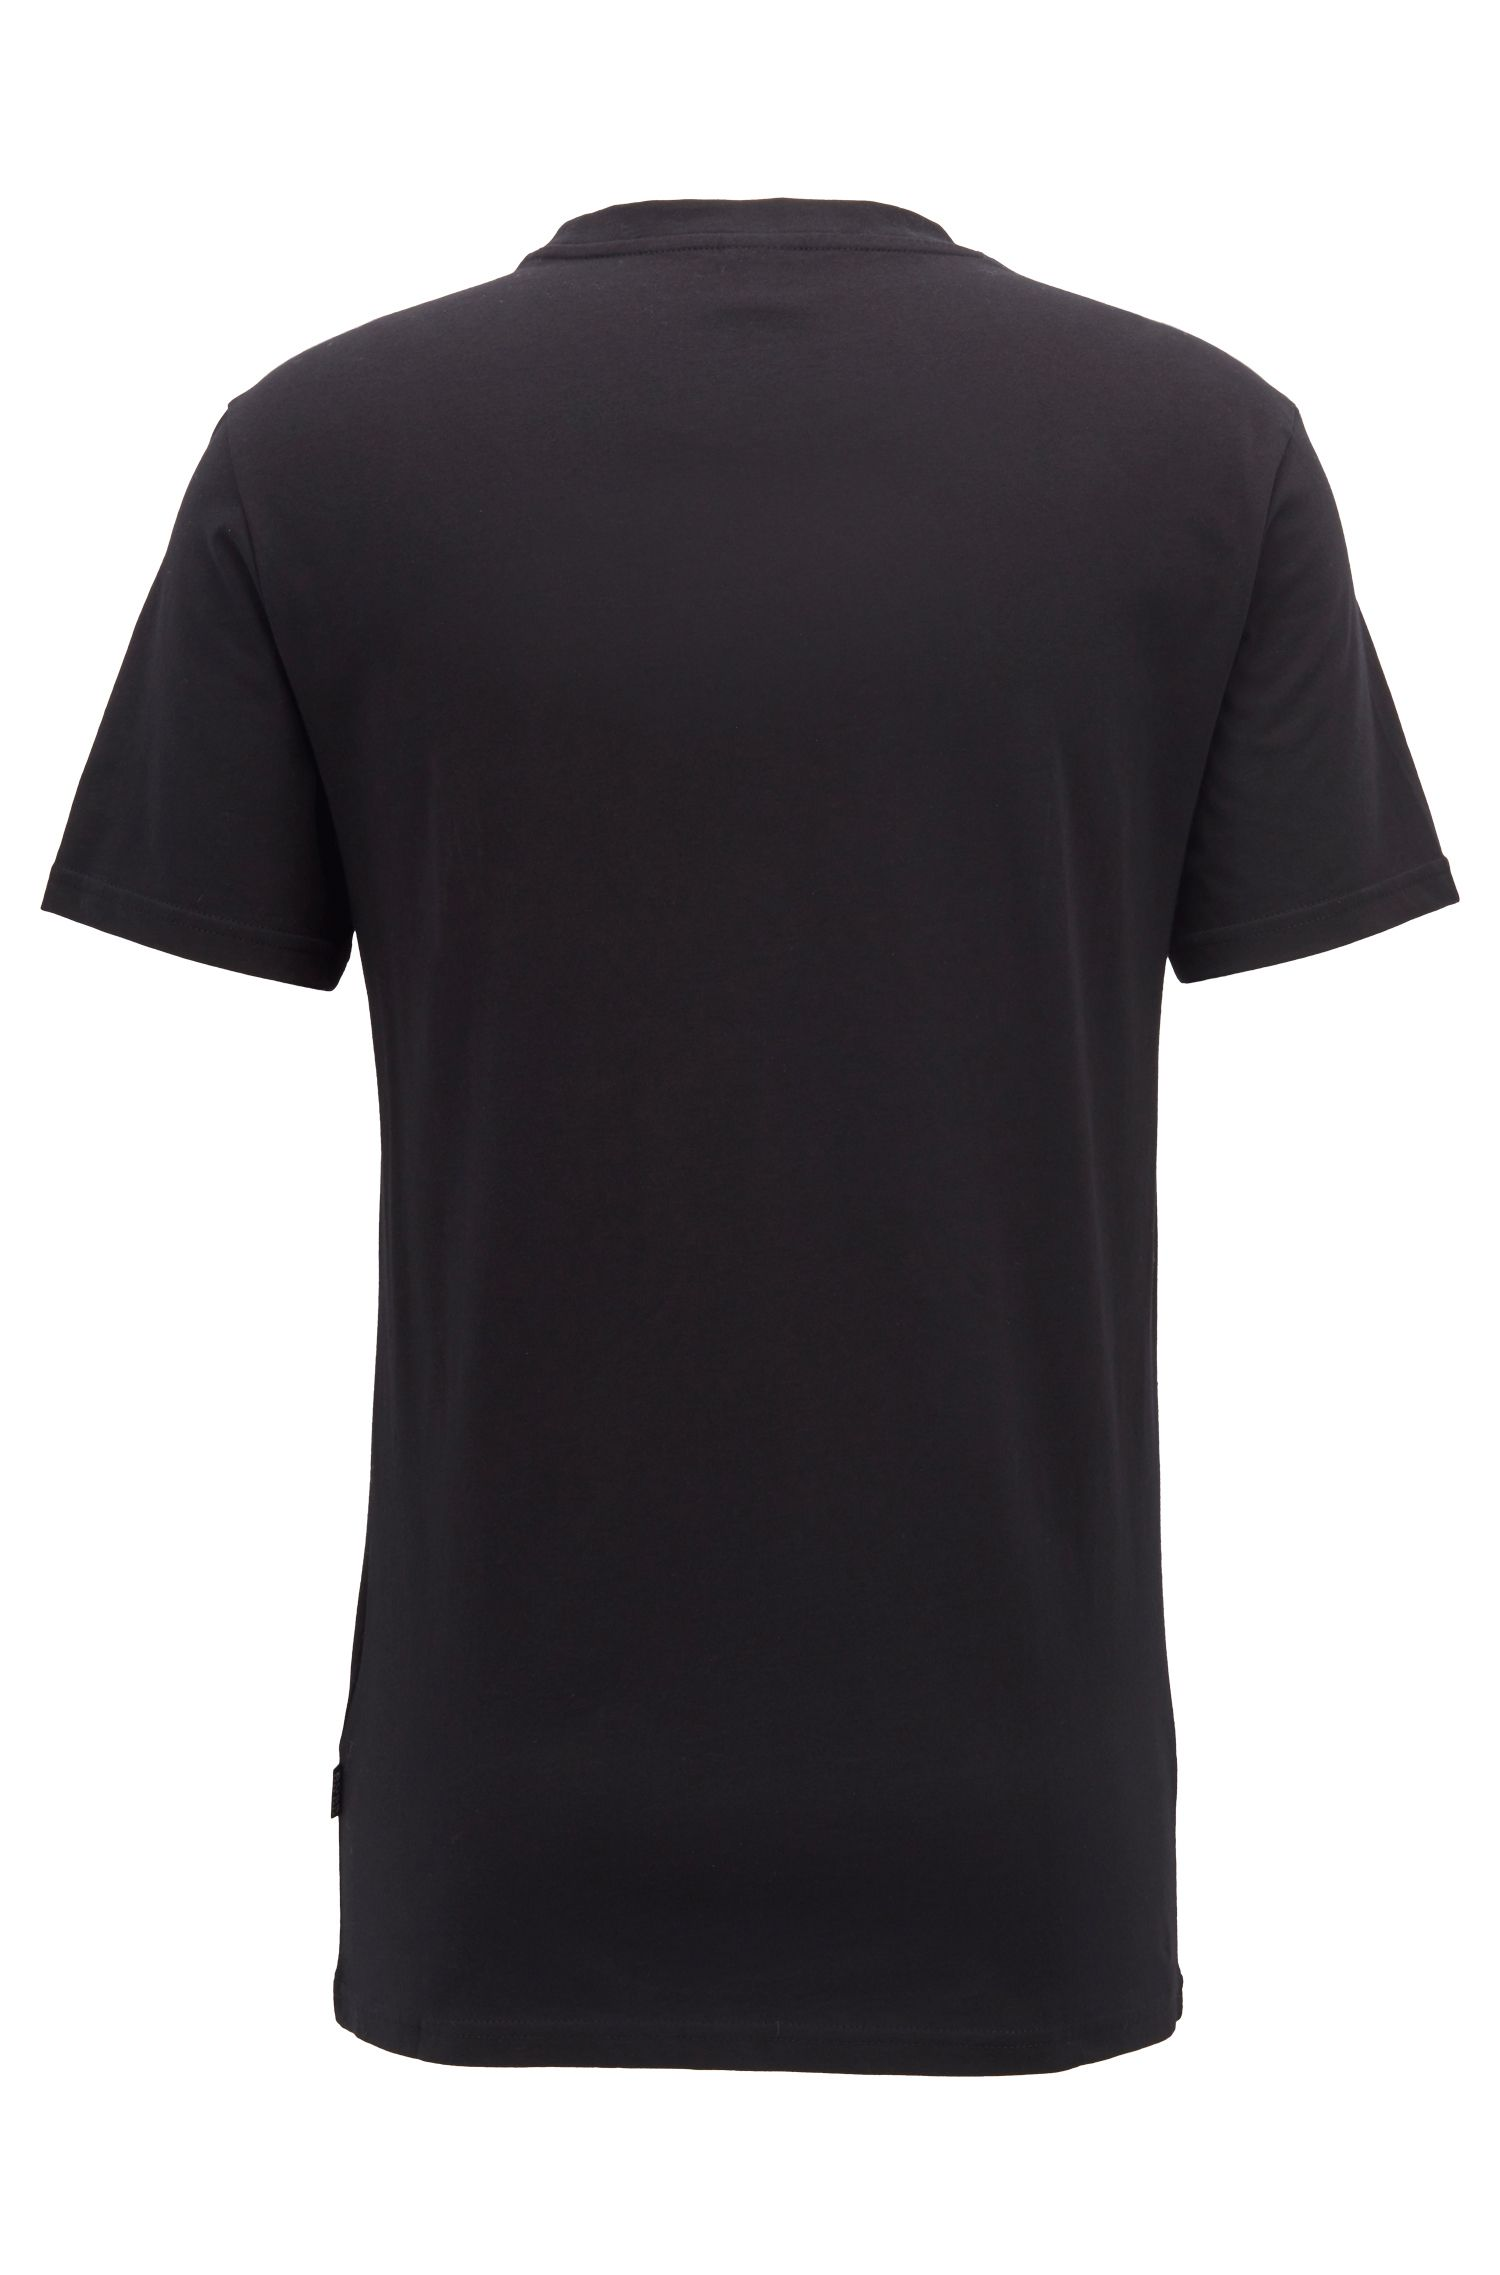 Relaxed-fit cotton T-shirt with UV protection, Black